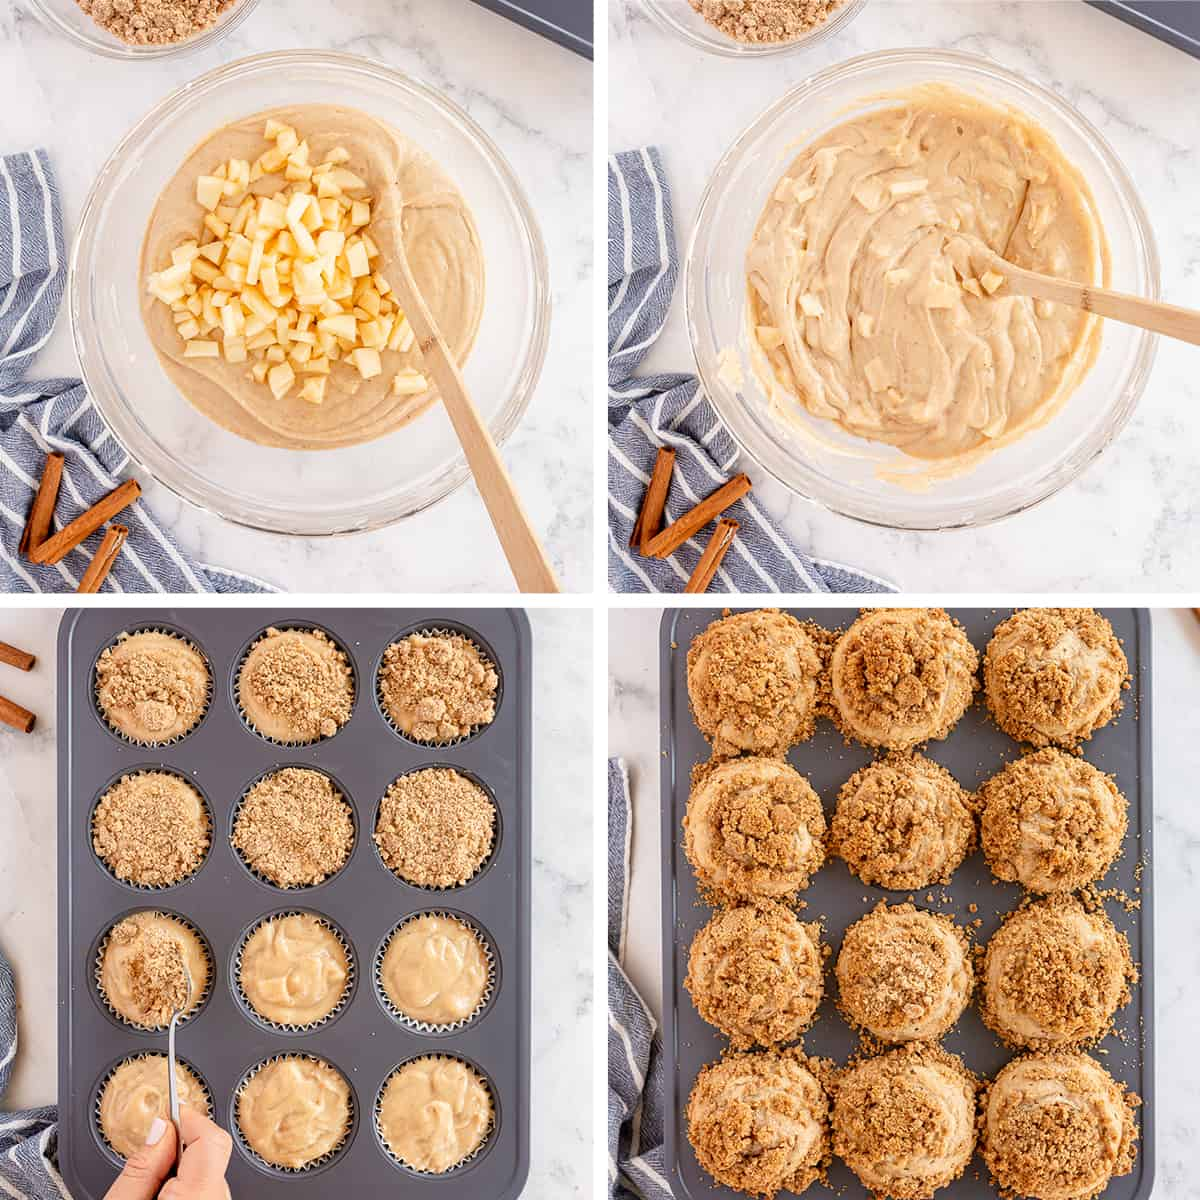 Muffin batter in a bowl and in a muffin pan being topped with streusel.